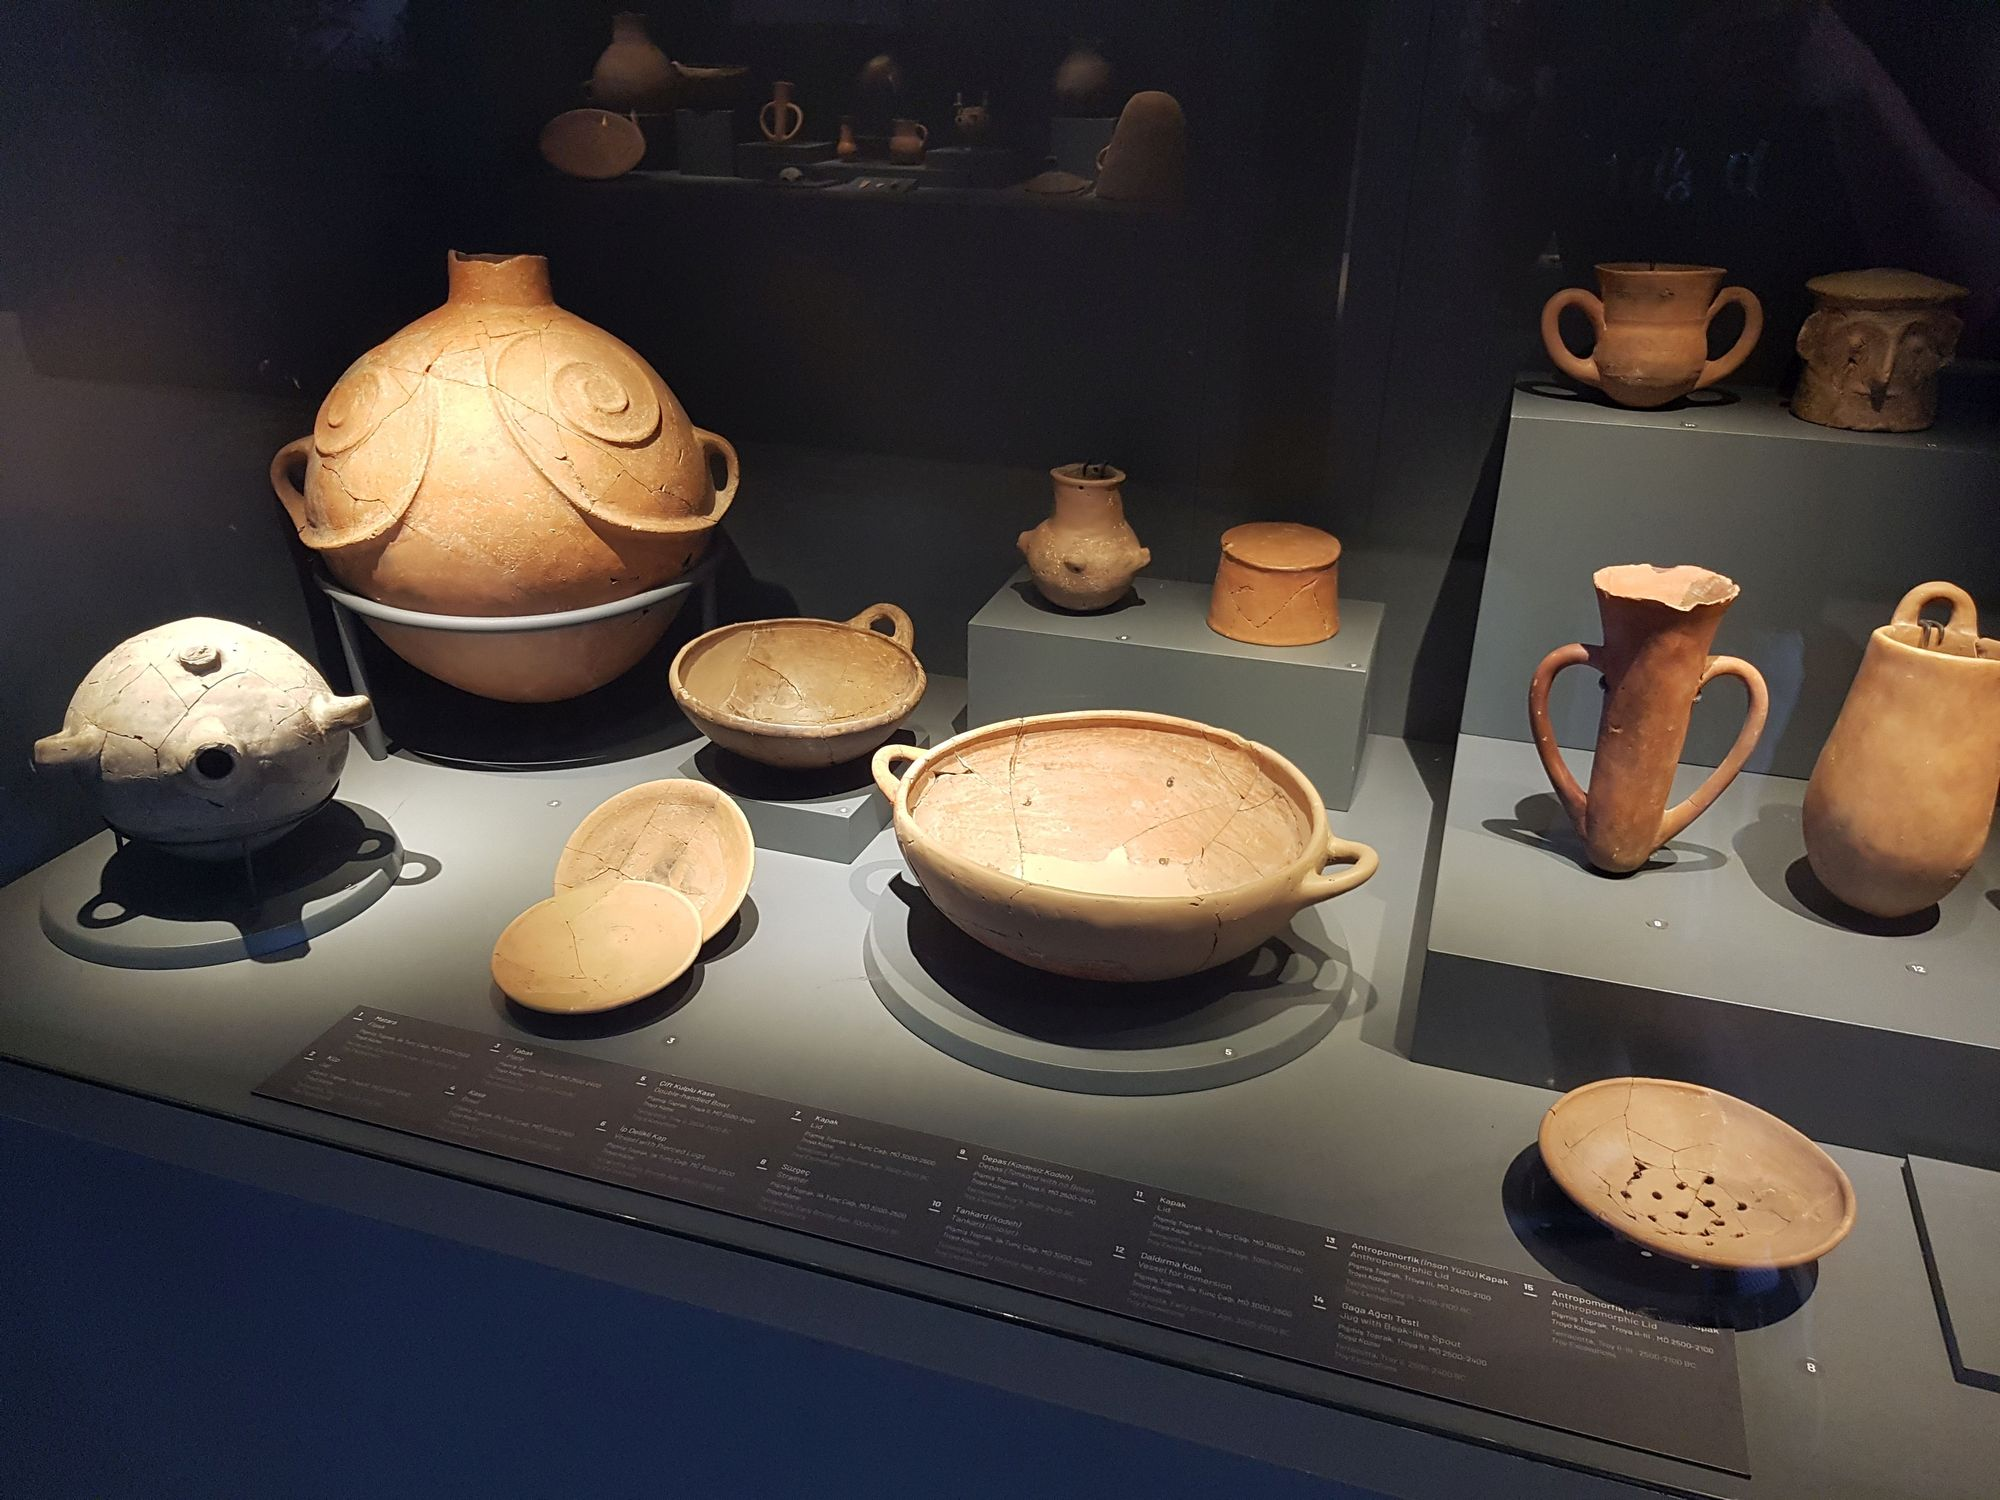 Cooking Culture exhibition